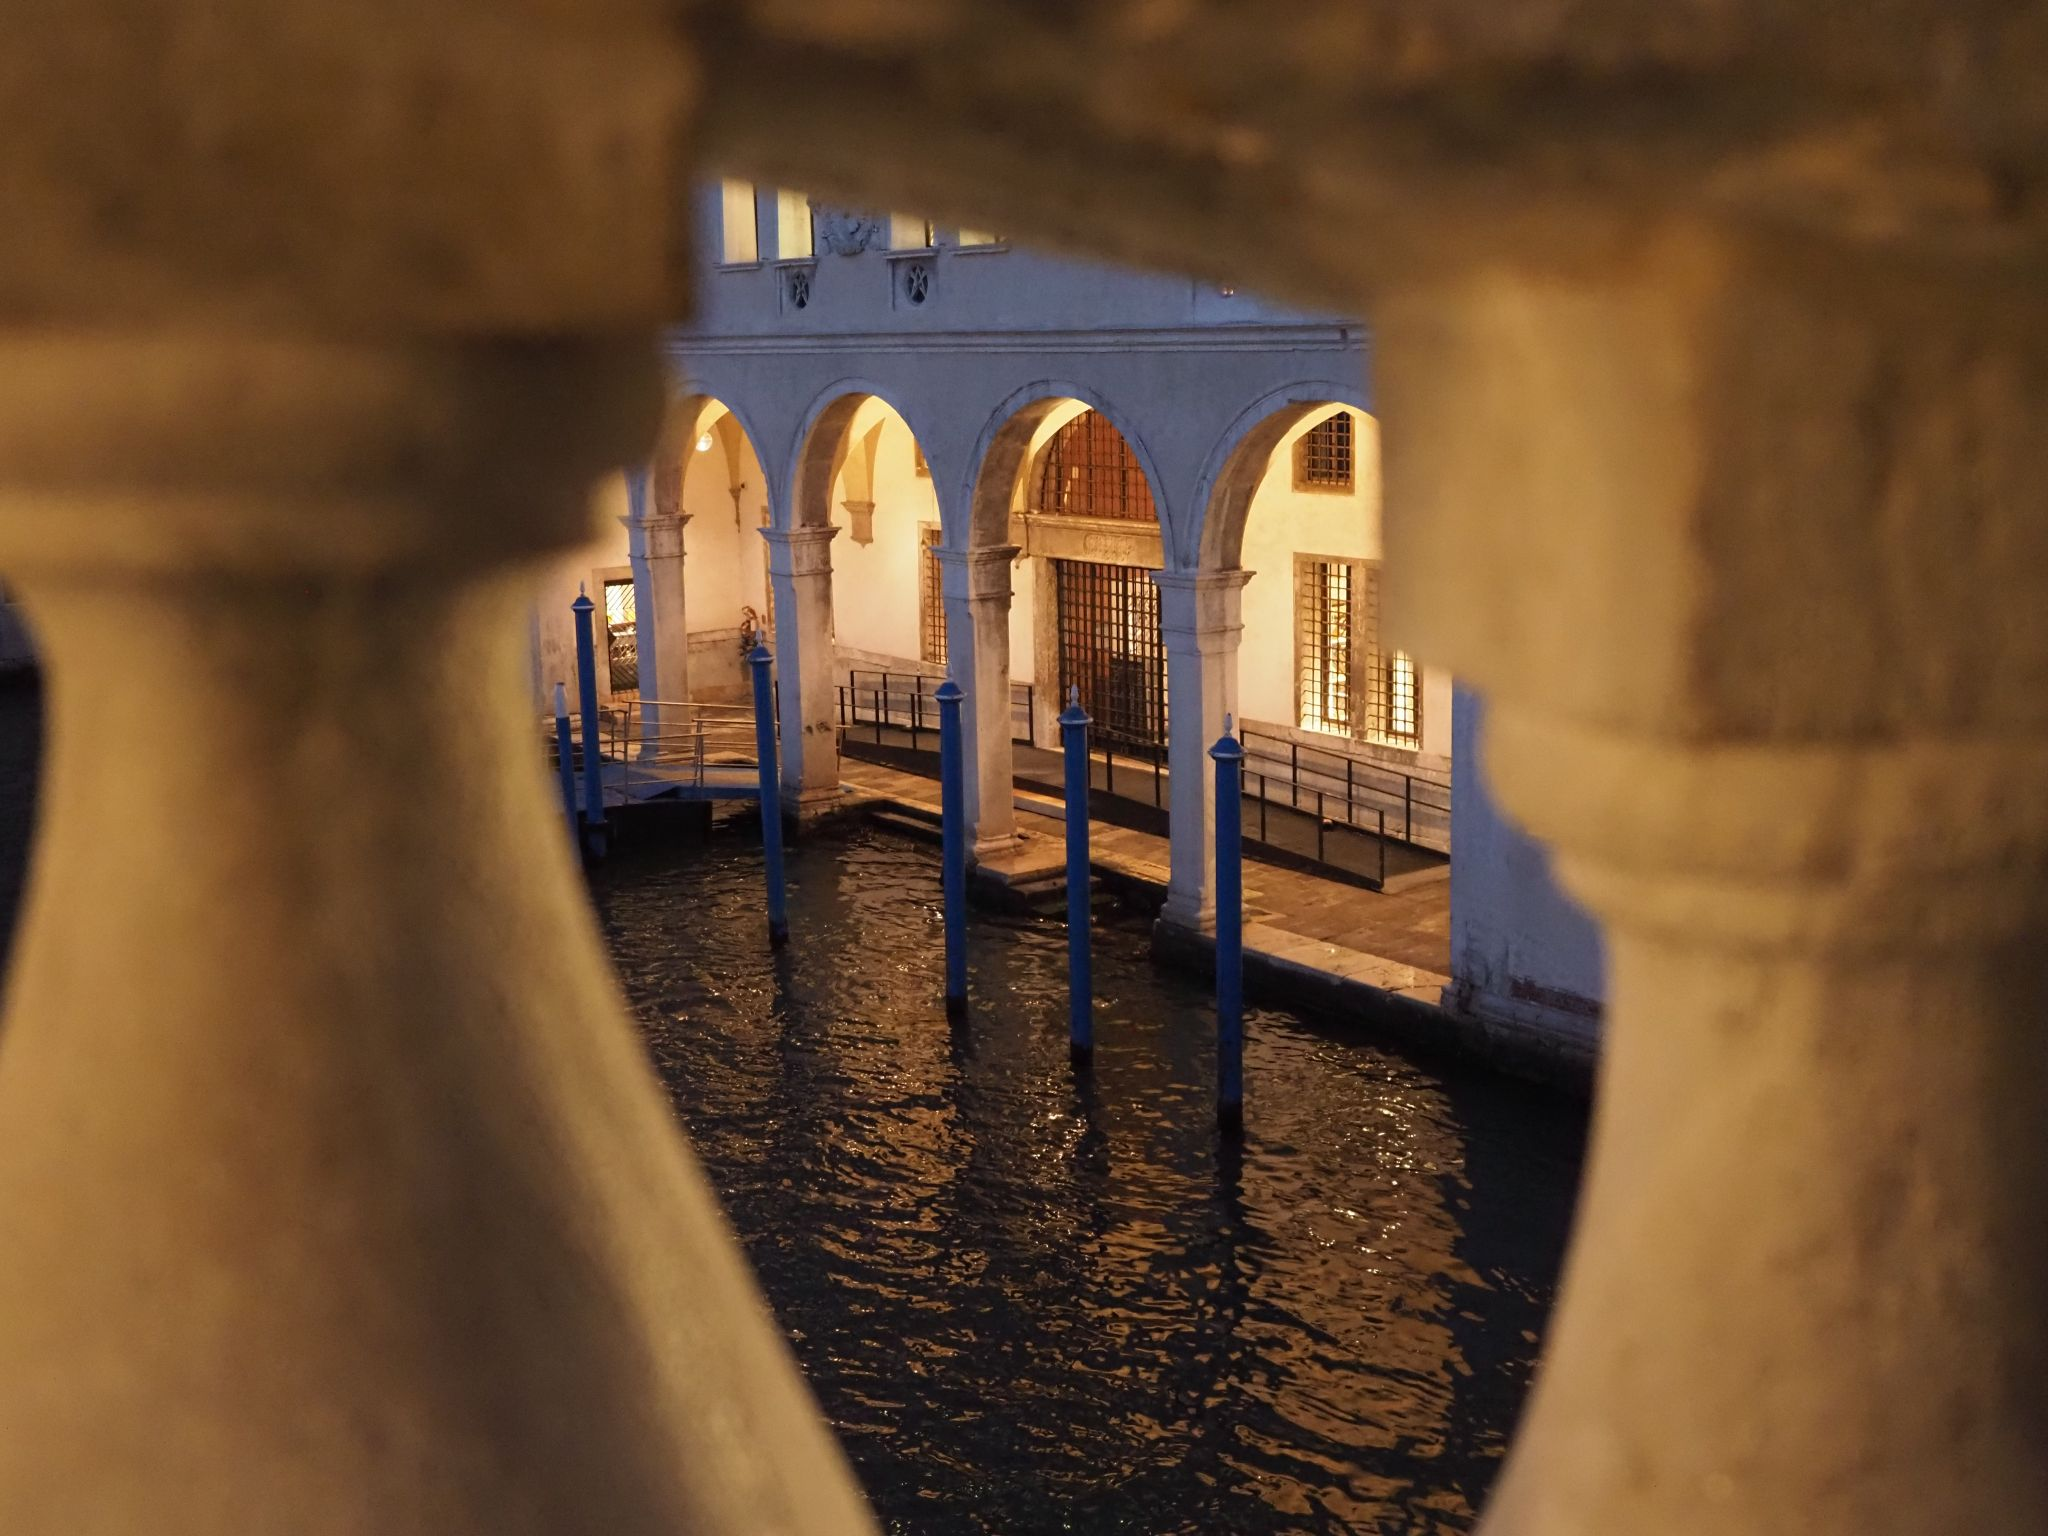 Another view from Rialto bridge, Italy